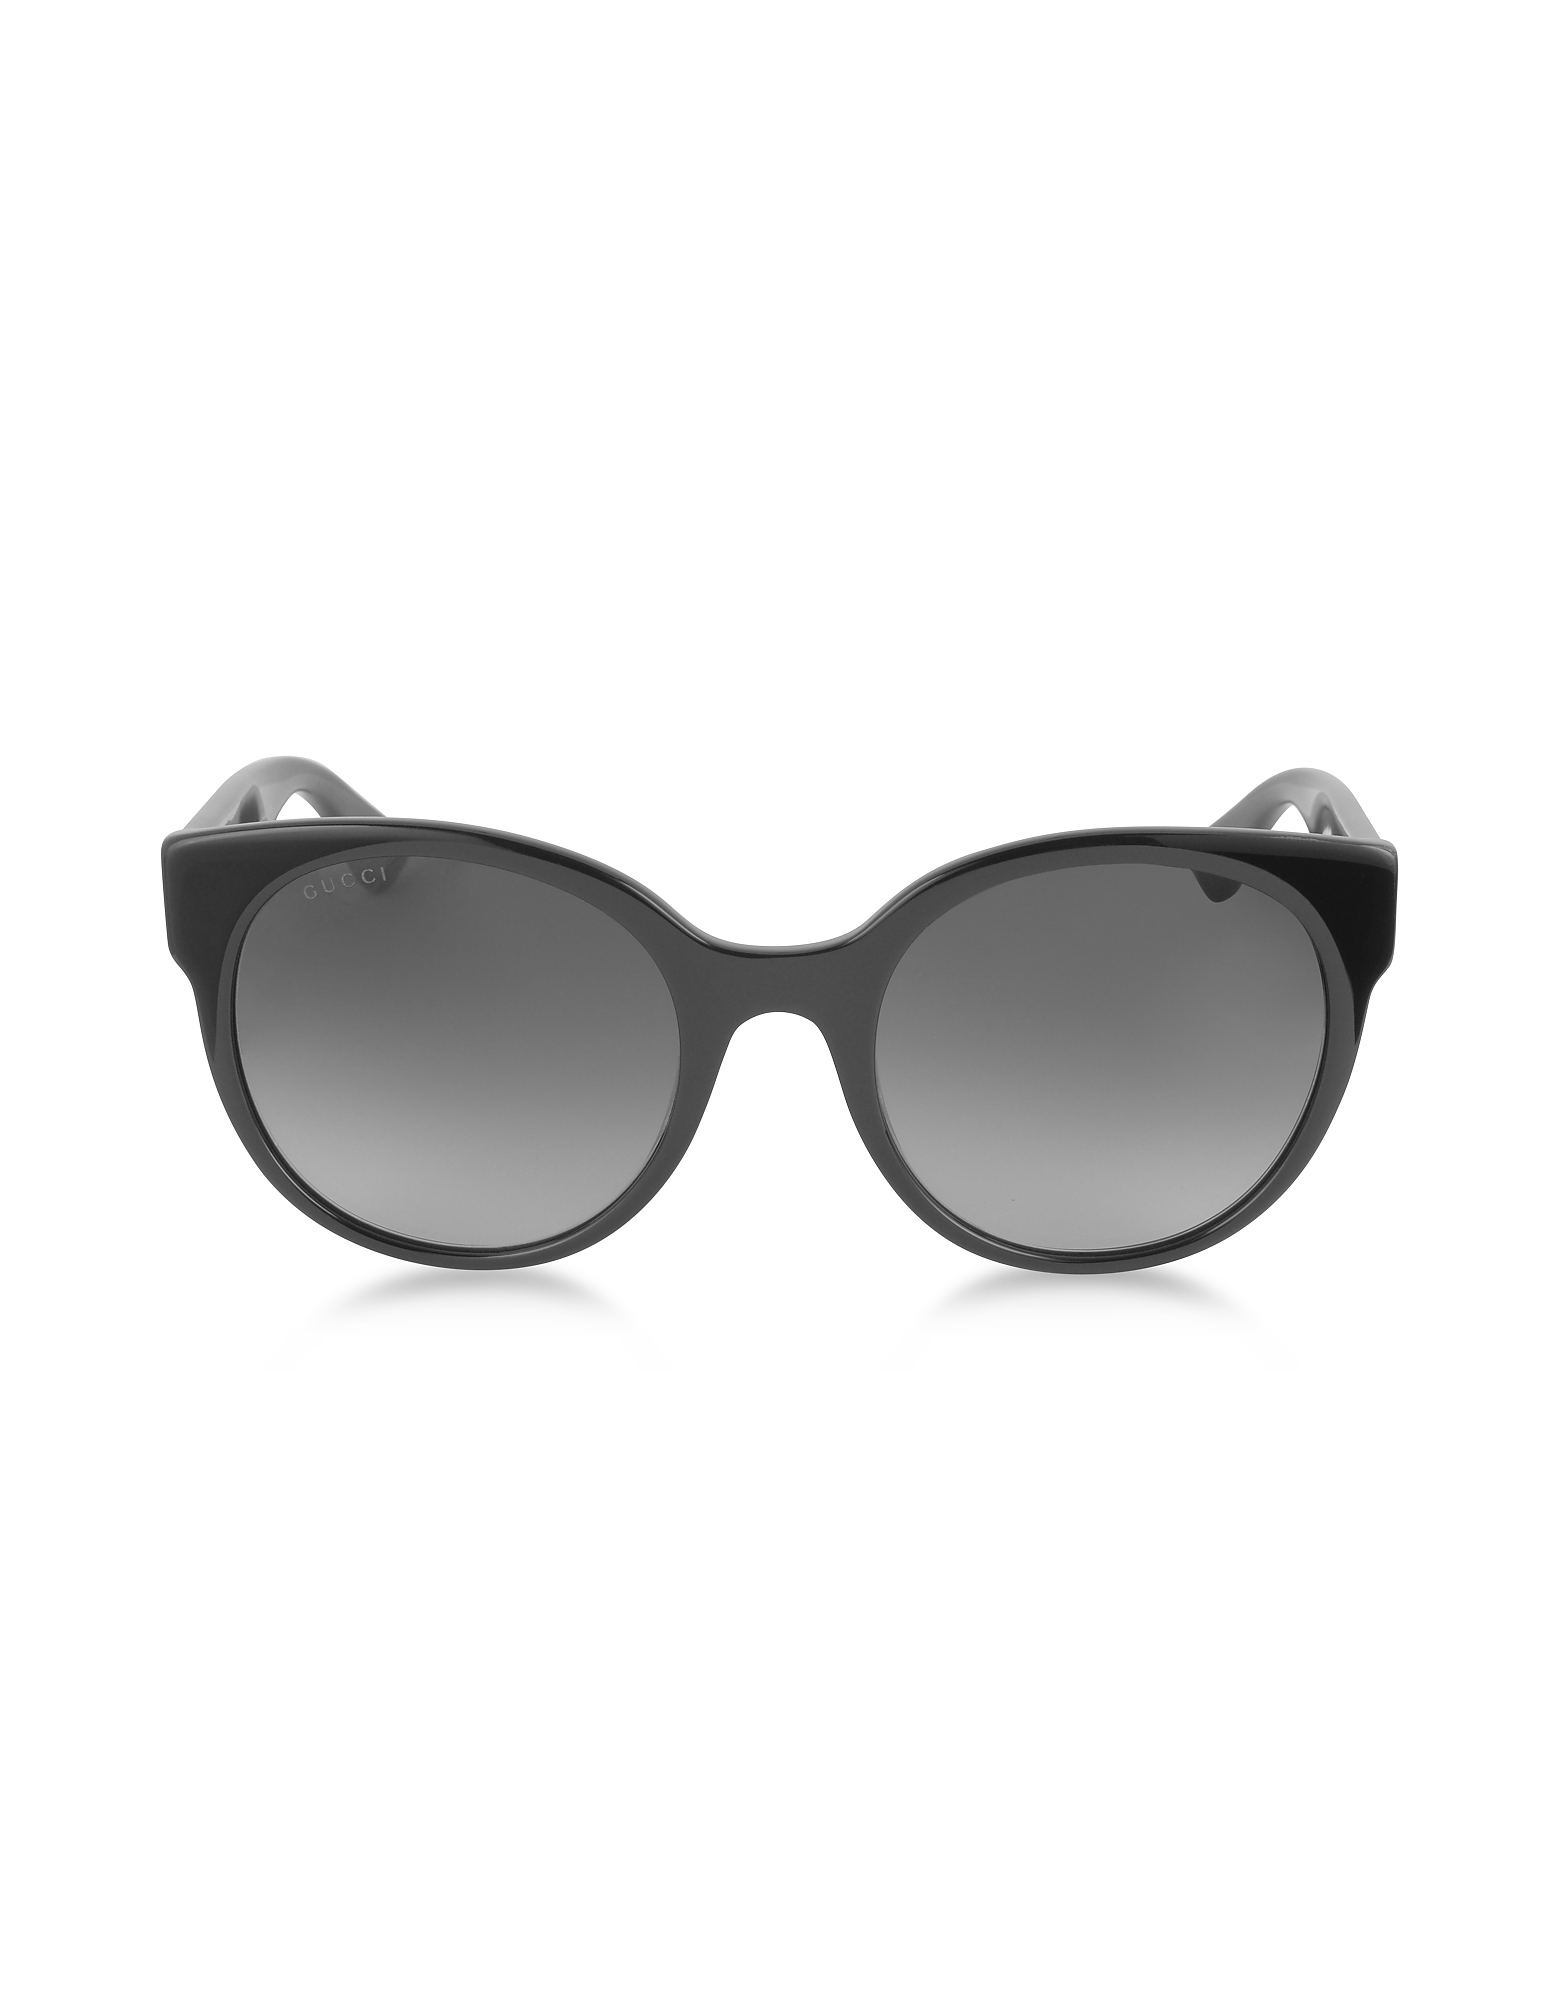 Gucci Sunglasses, GG0035S 001 Black Optyl Round Women's Sunglasses